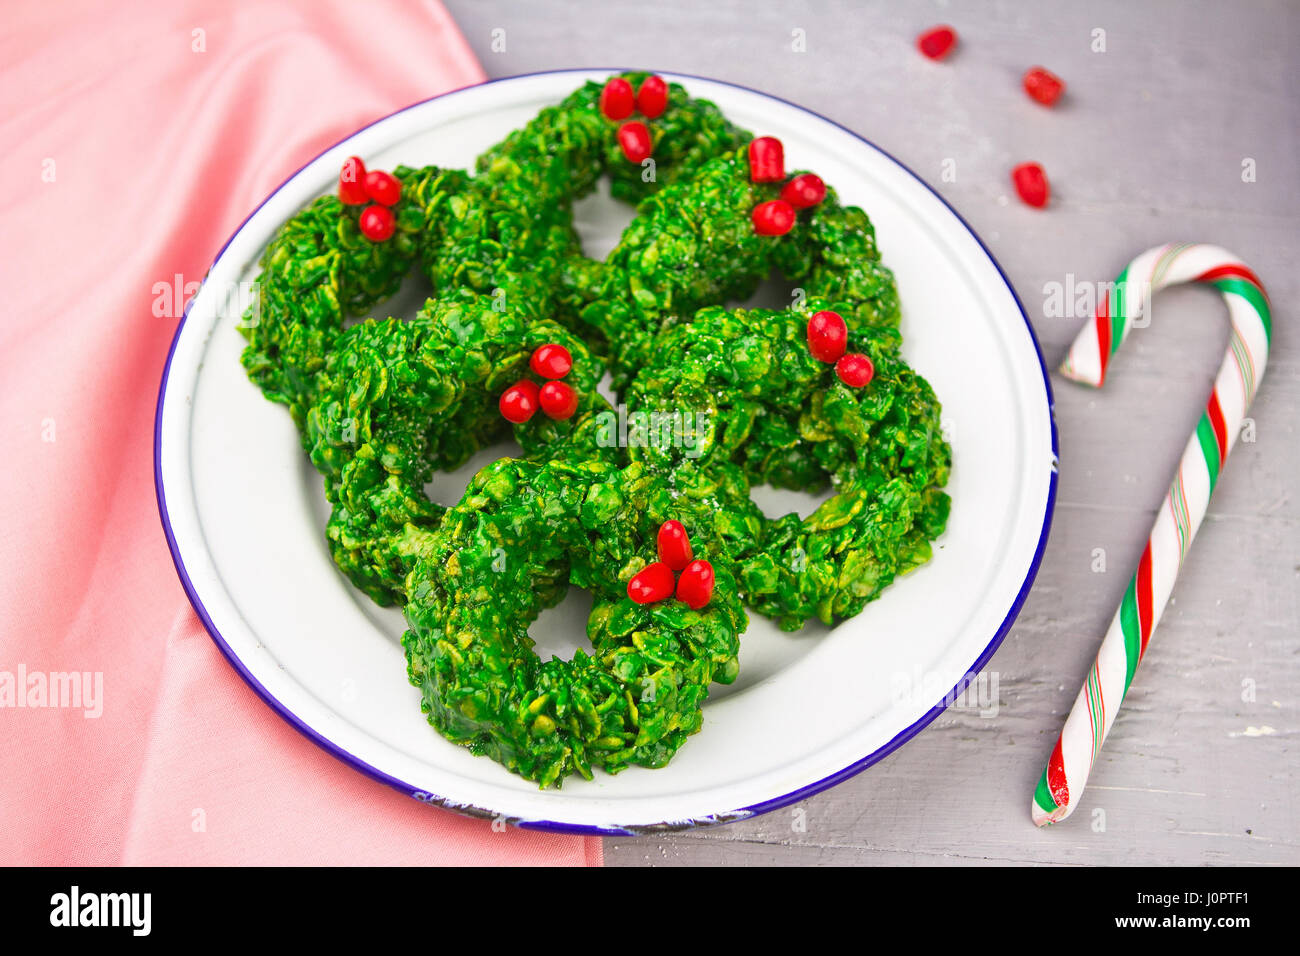 Christmas Wreath Cookies Made Of Cornflakes Green Colourant And